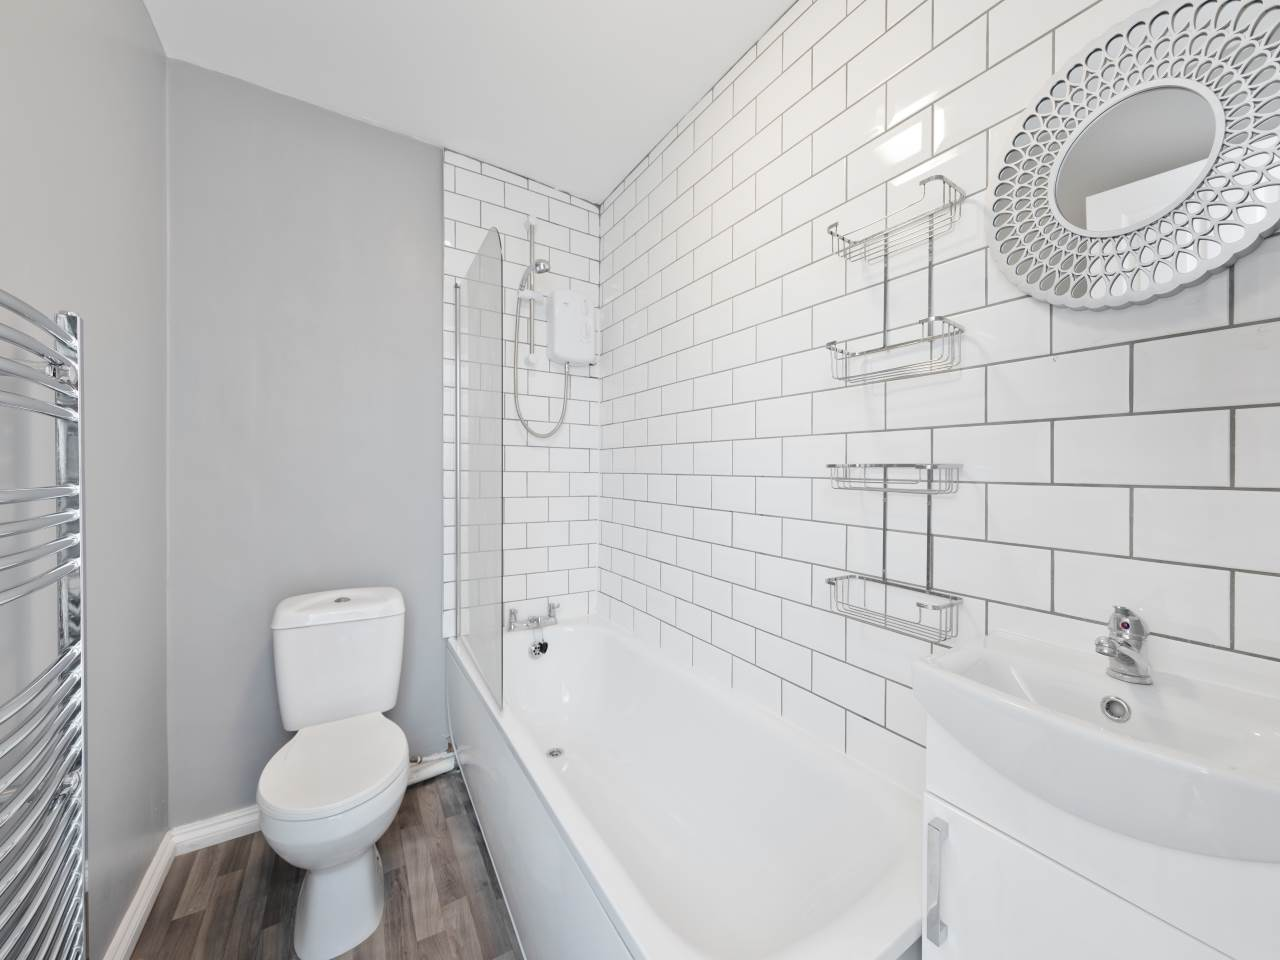 3 bed house for sale in Exning Road , Canning Town  11